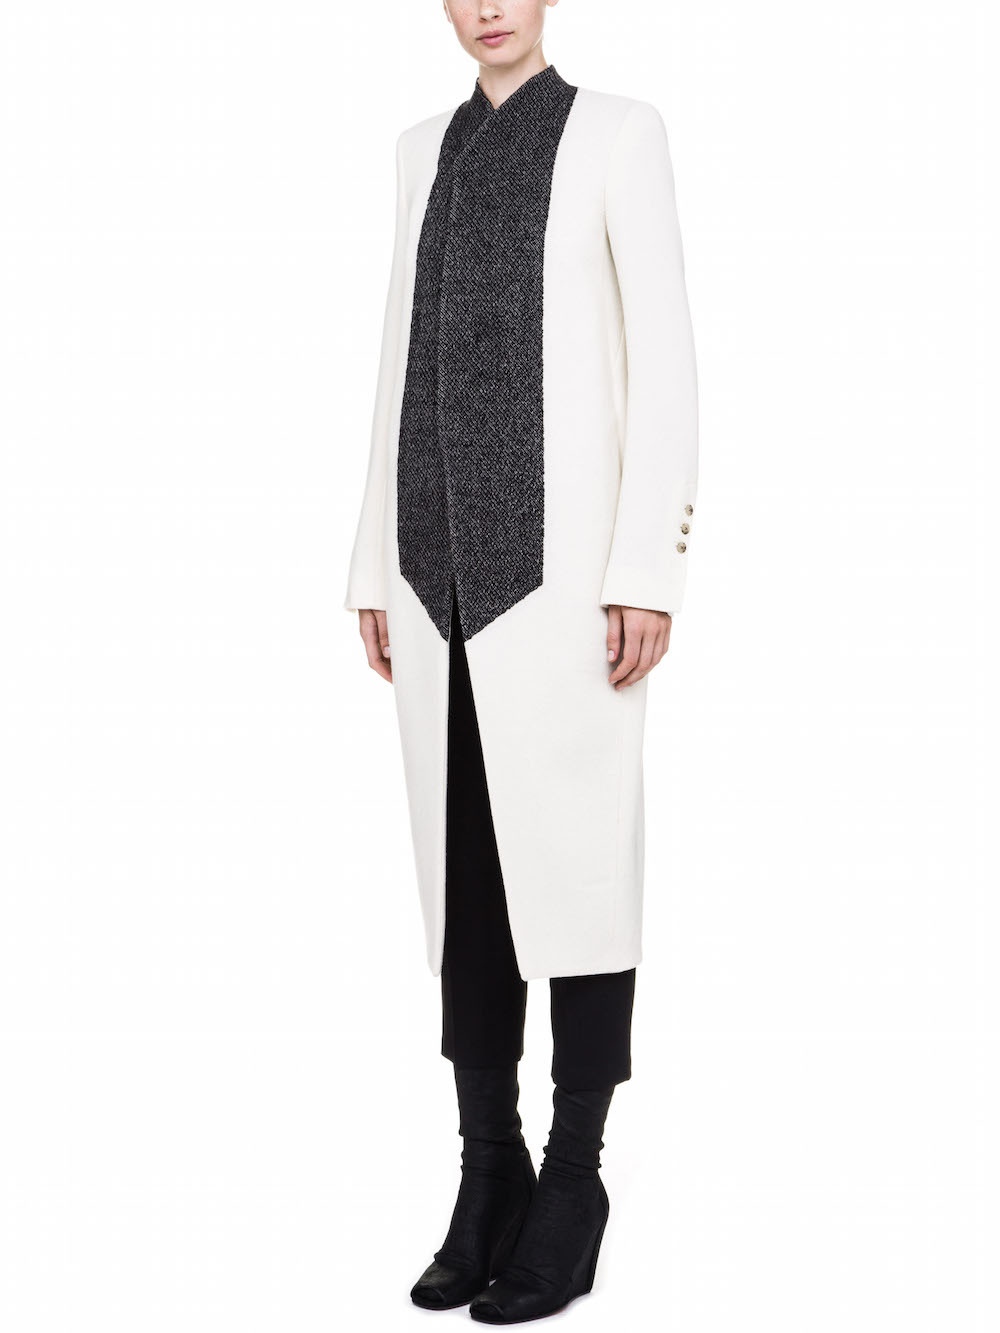 RICK OWENS COAT IN WHITE AND BLACK WOOL